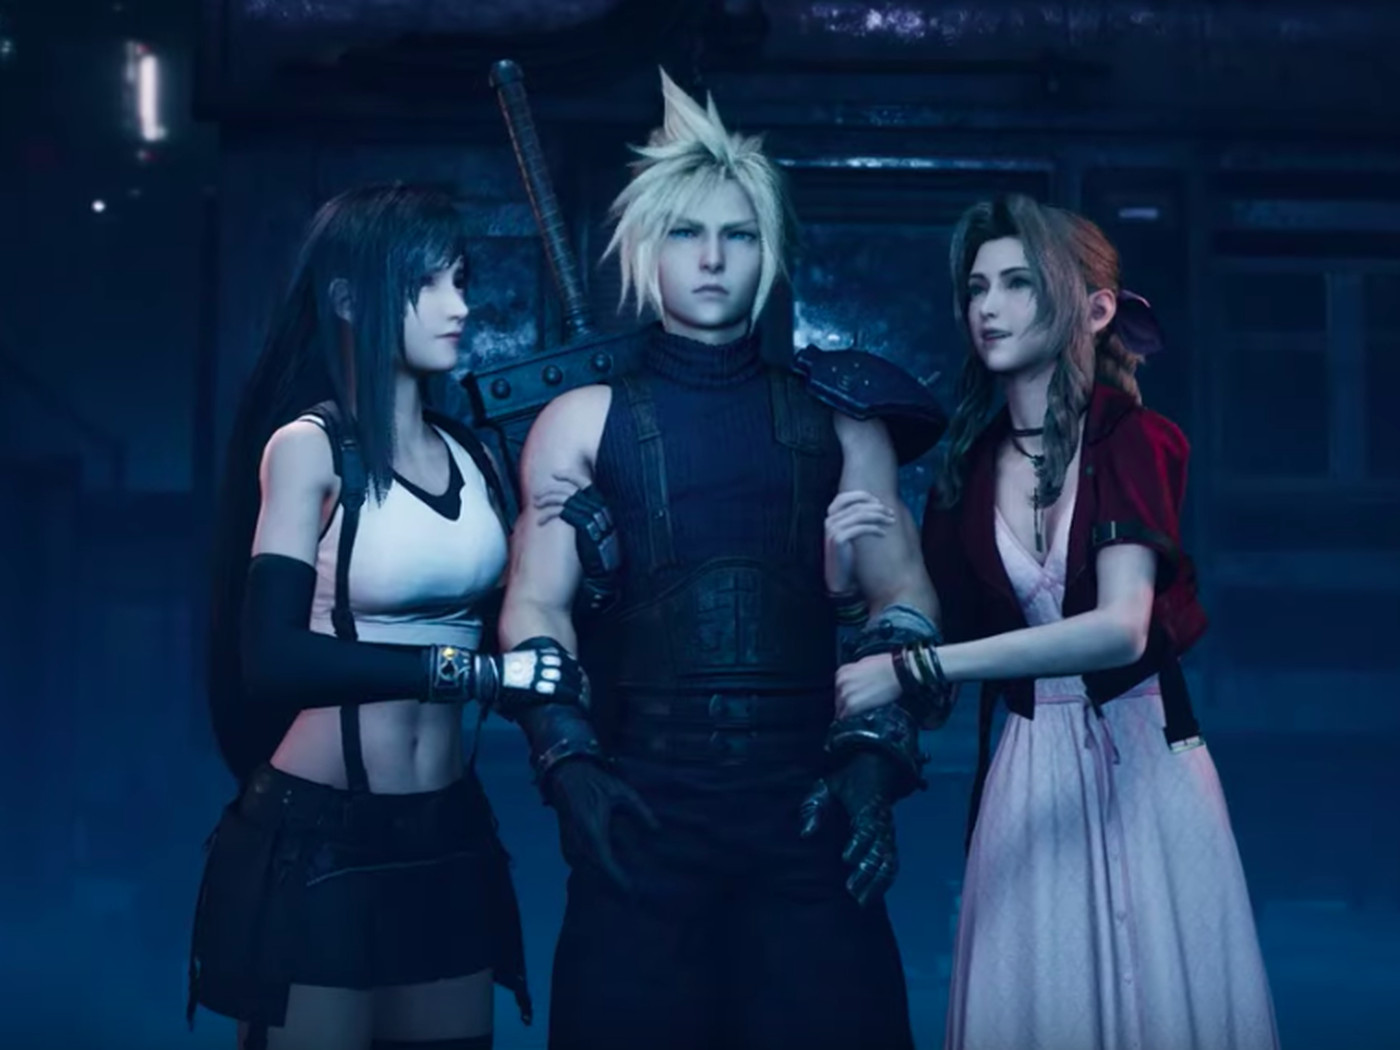 Final Fantasy 7 Remakes Tgs Trailer Is Full Of Familiar